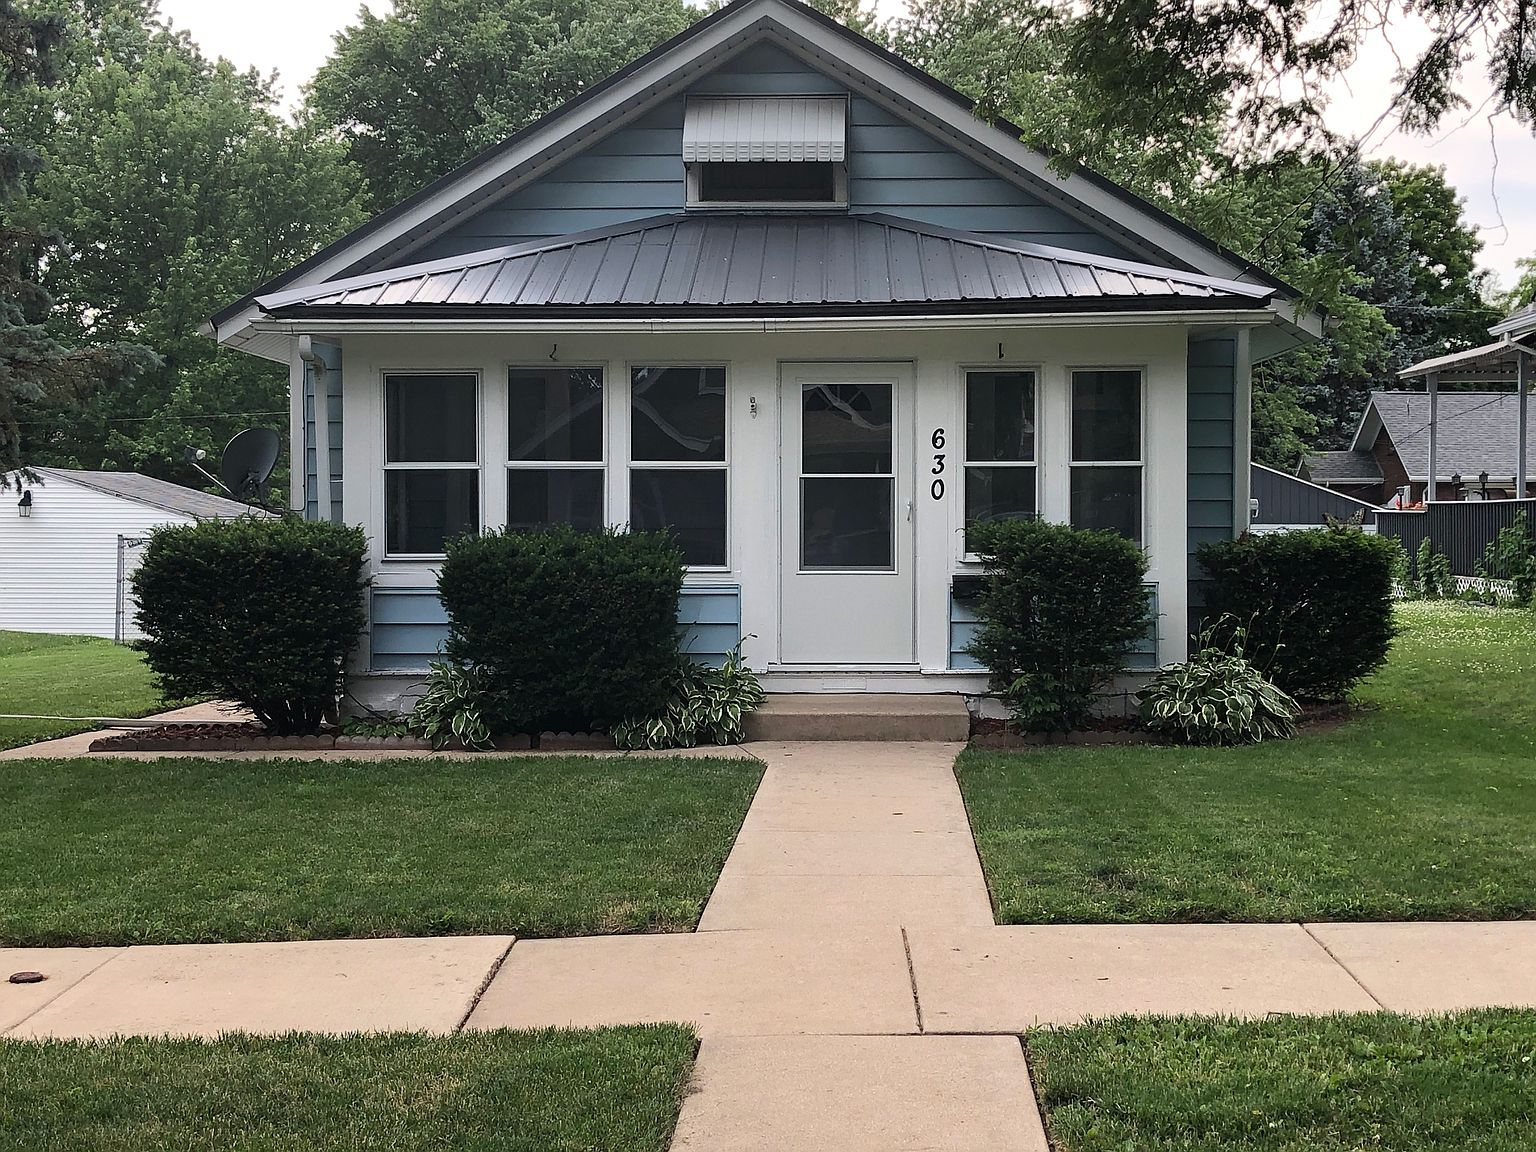 630 Rome Ave Rockford Il 61107 Zillow